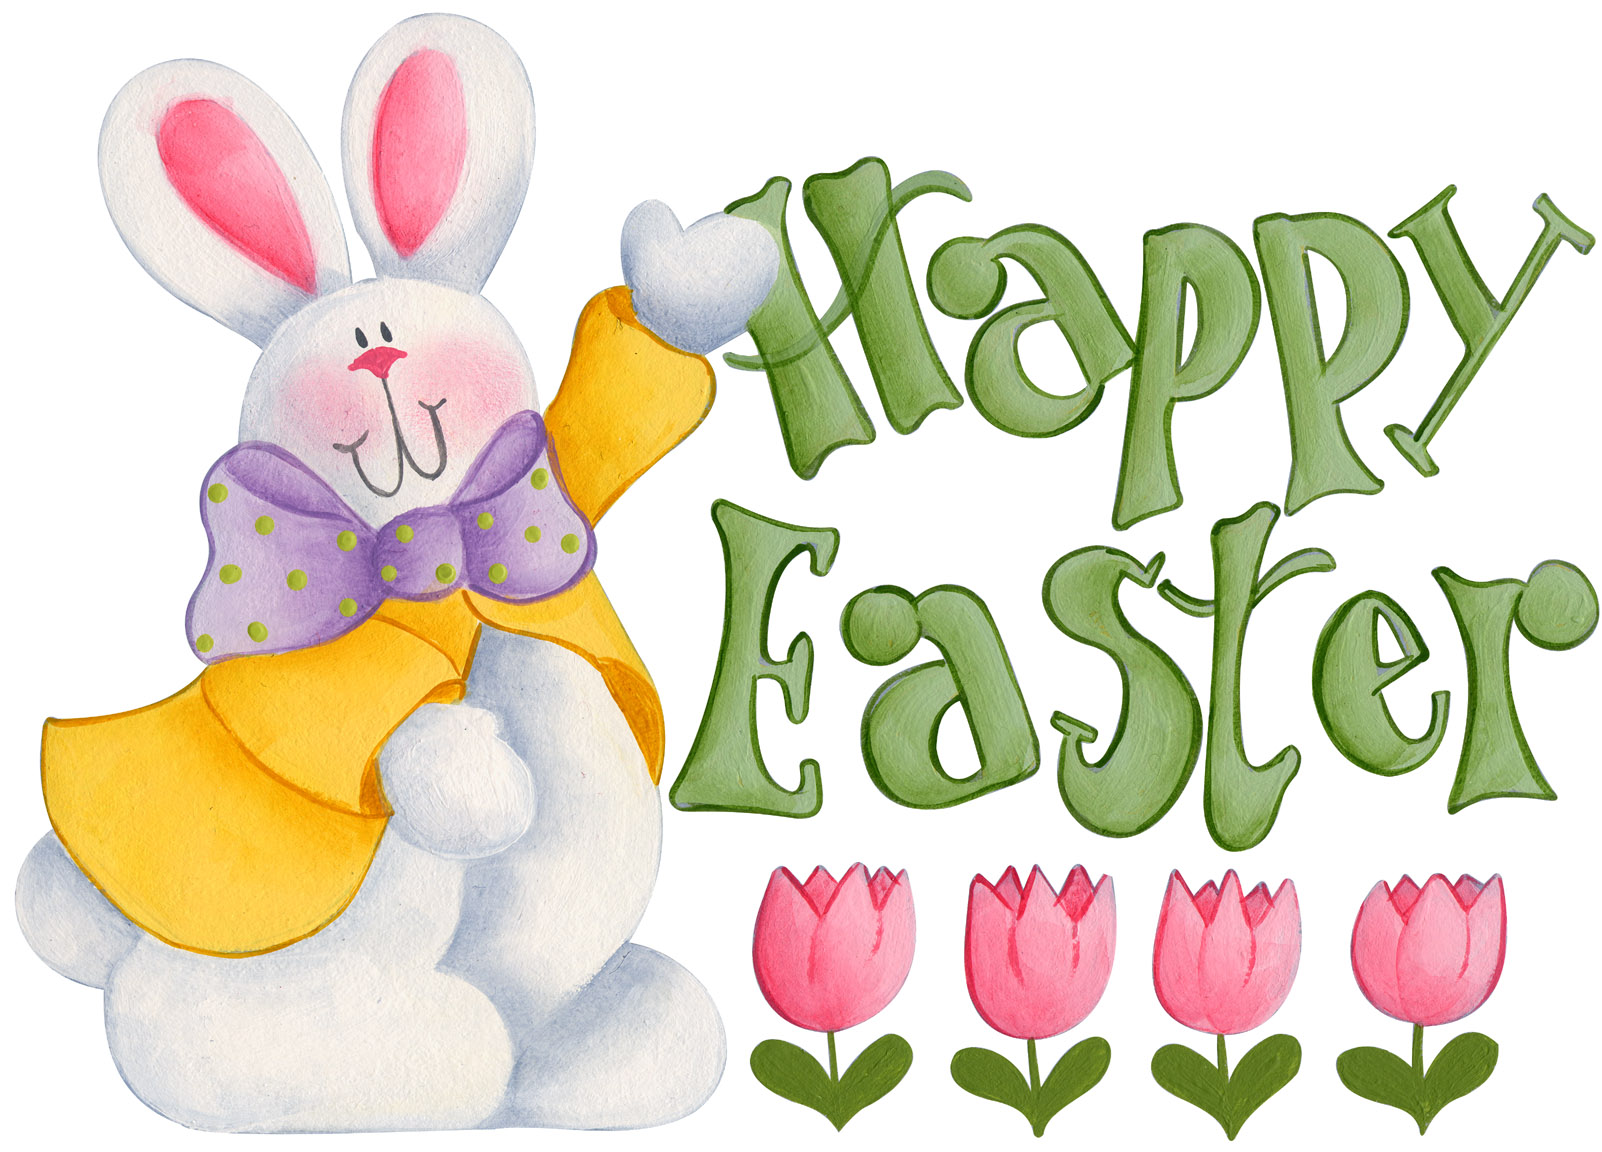 Happy Easter Day Images,Easter Pictures, Quotes and Wishes